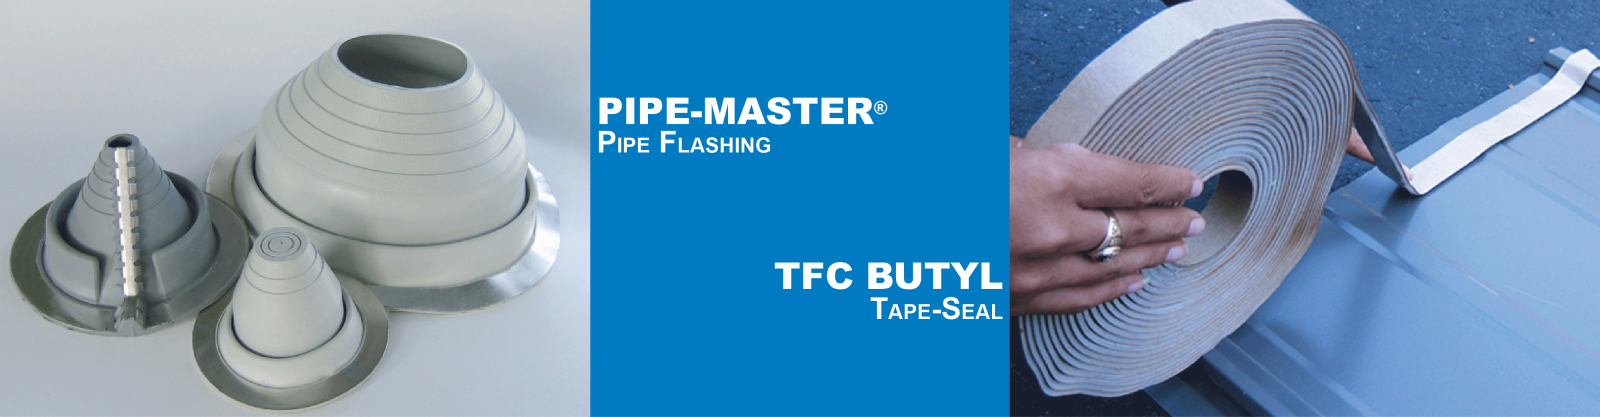 Pipemaster-website-header2018.png